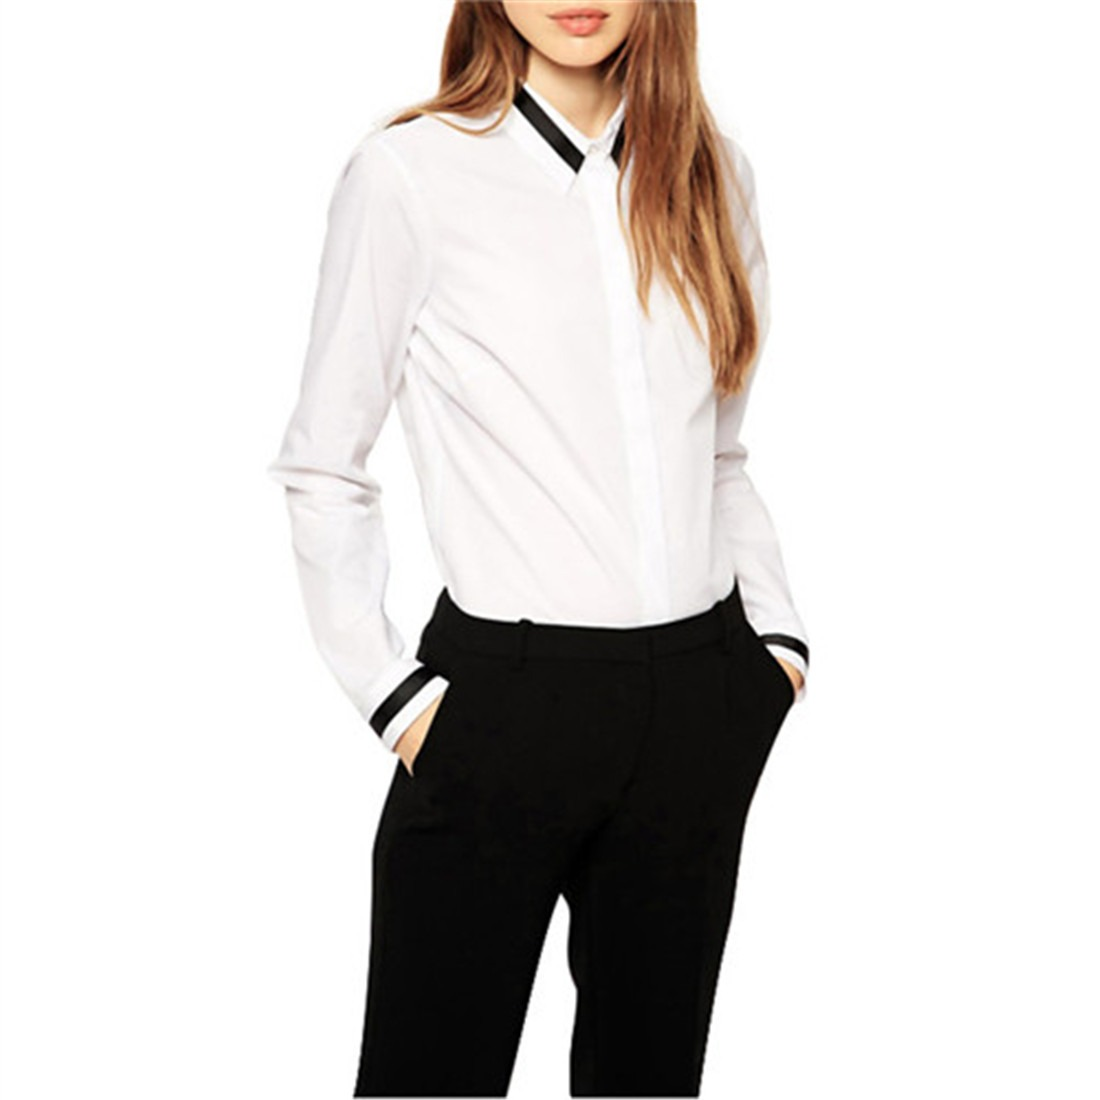 Classical New Fashion Women White Cotton Long Sleeve Basic Shirts Top Blouse Hot